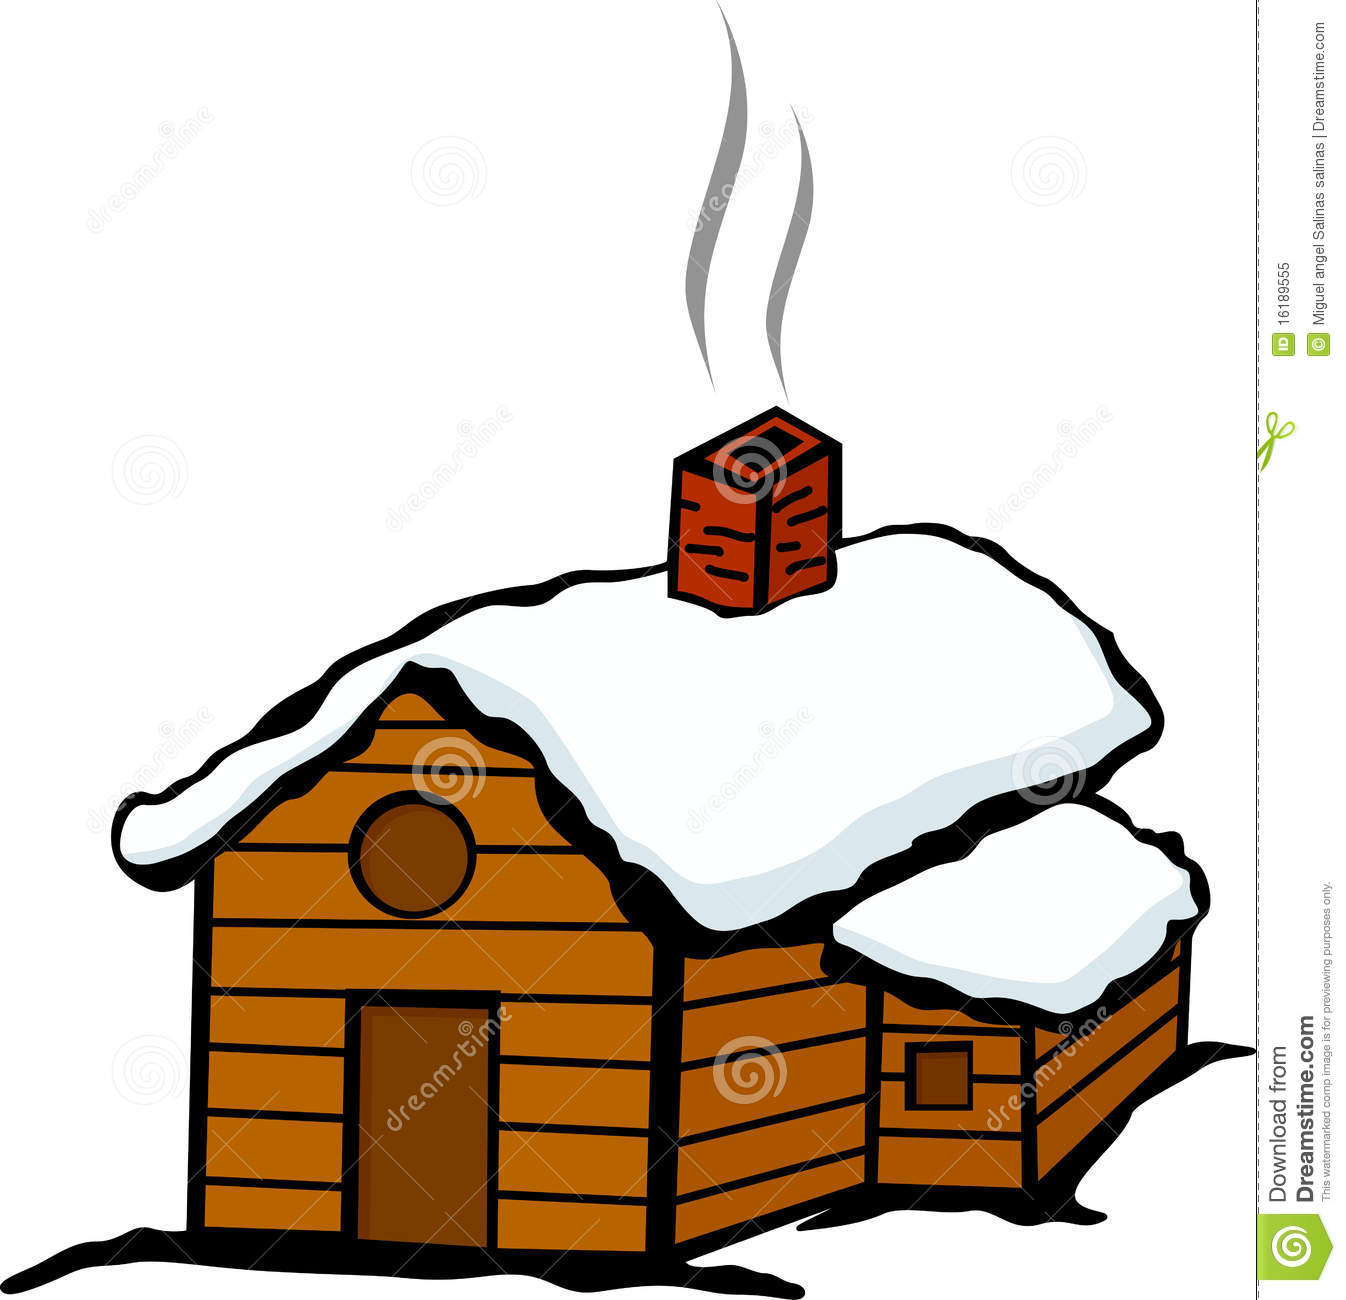 house winter clipart - photo #37